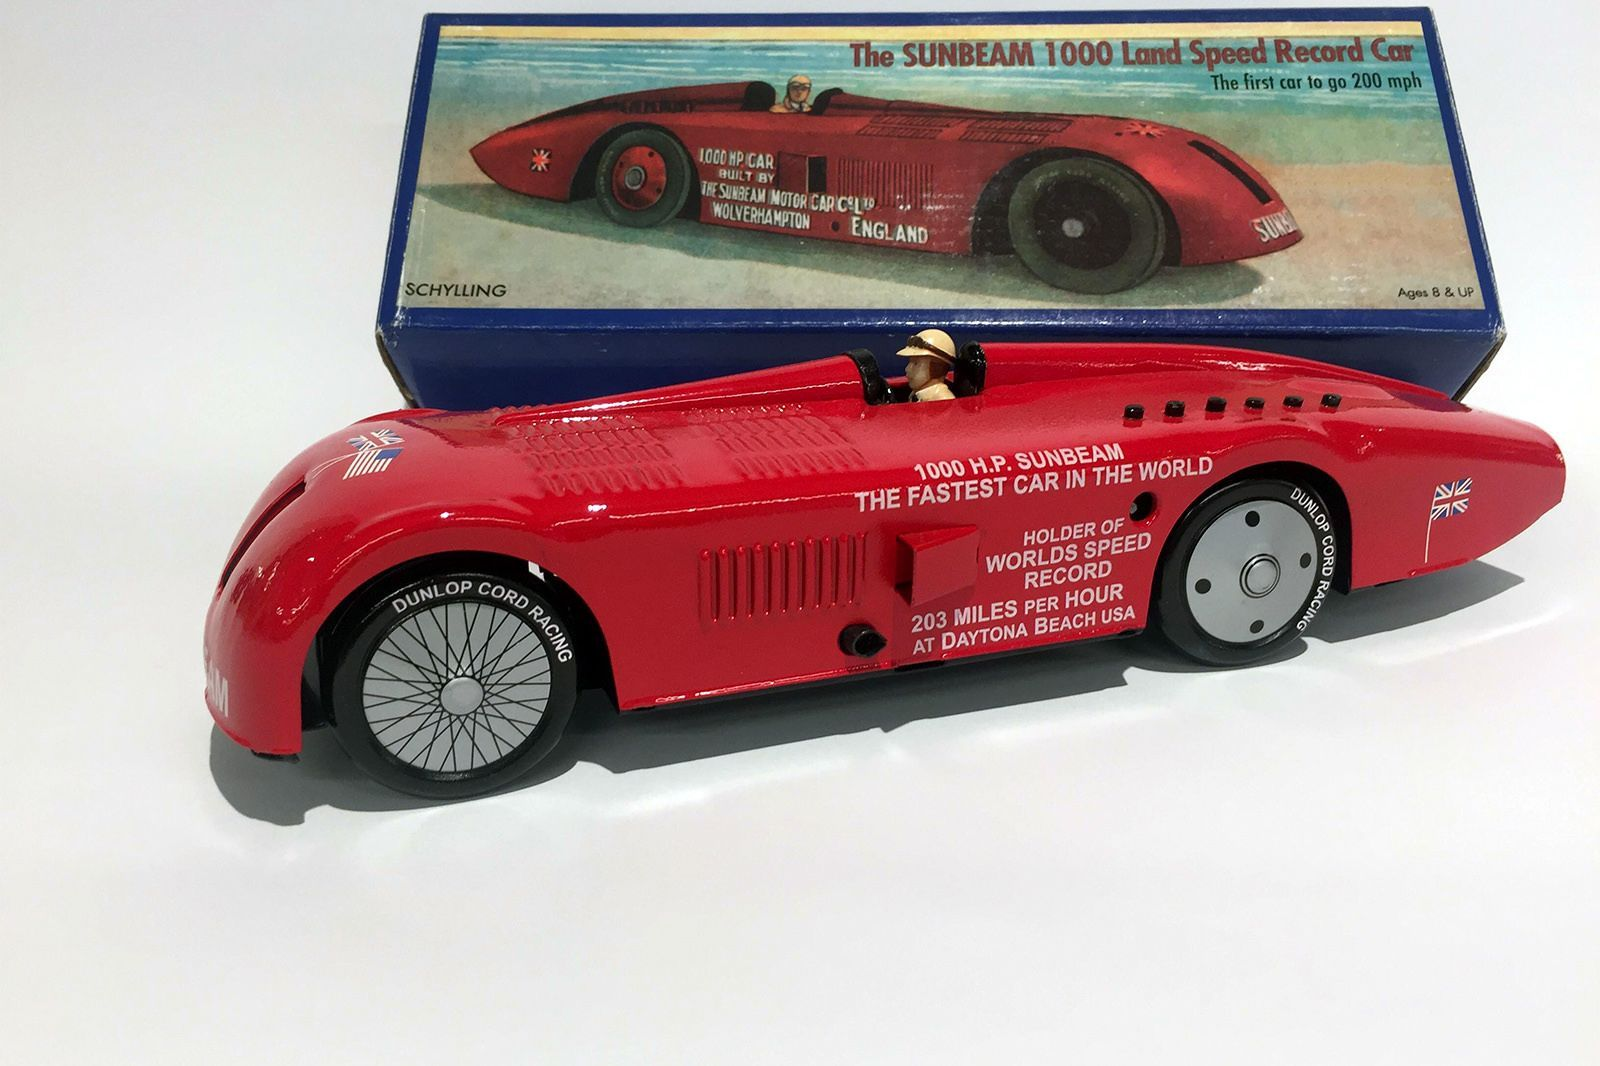 Model Tin Car Schylling Collector Series - The Sunbeam 1000 Land Speed Record Car